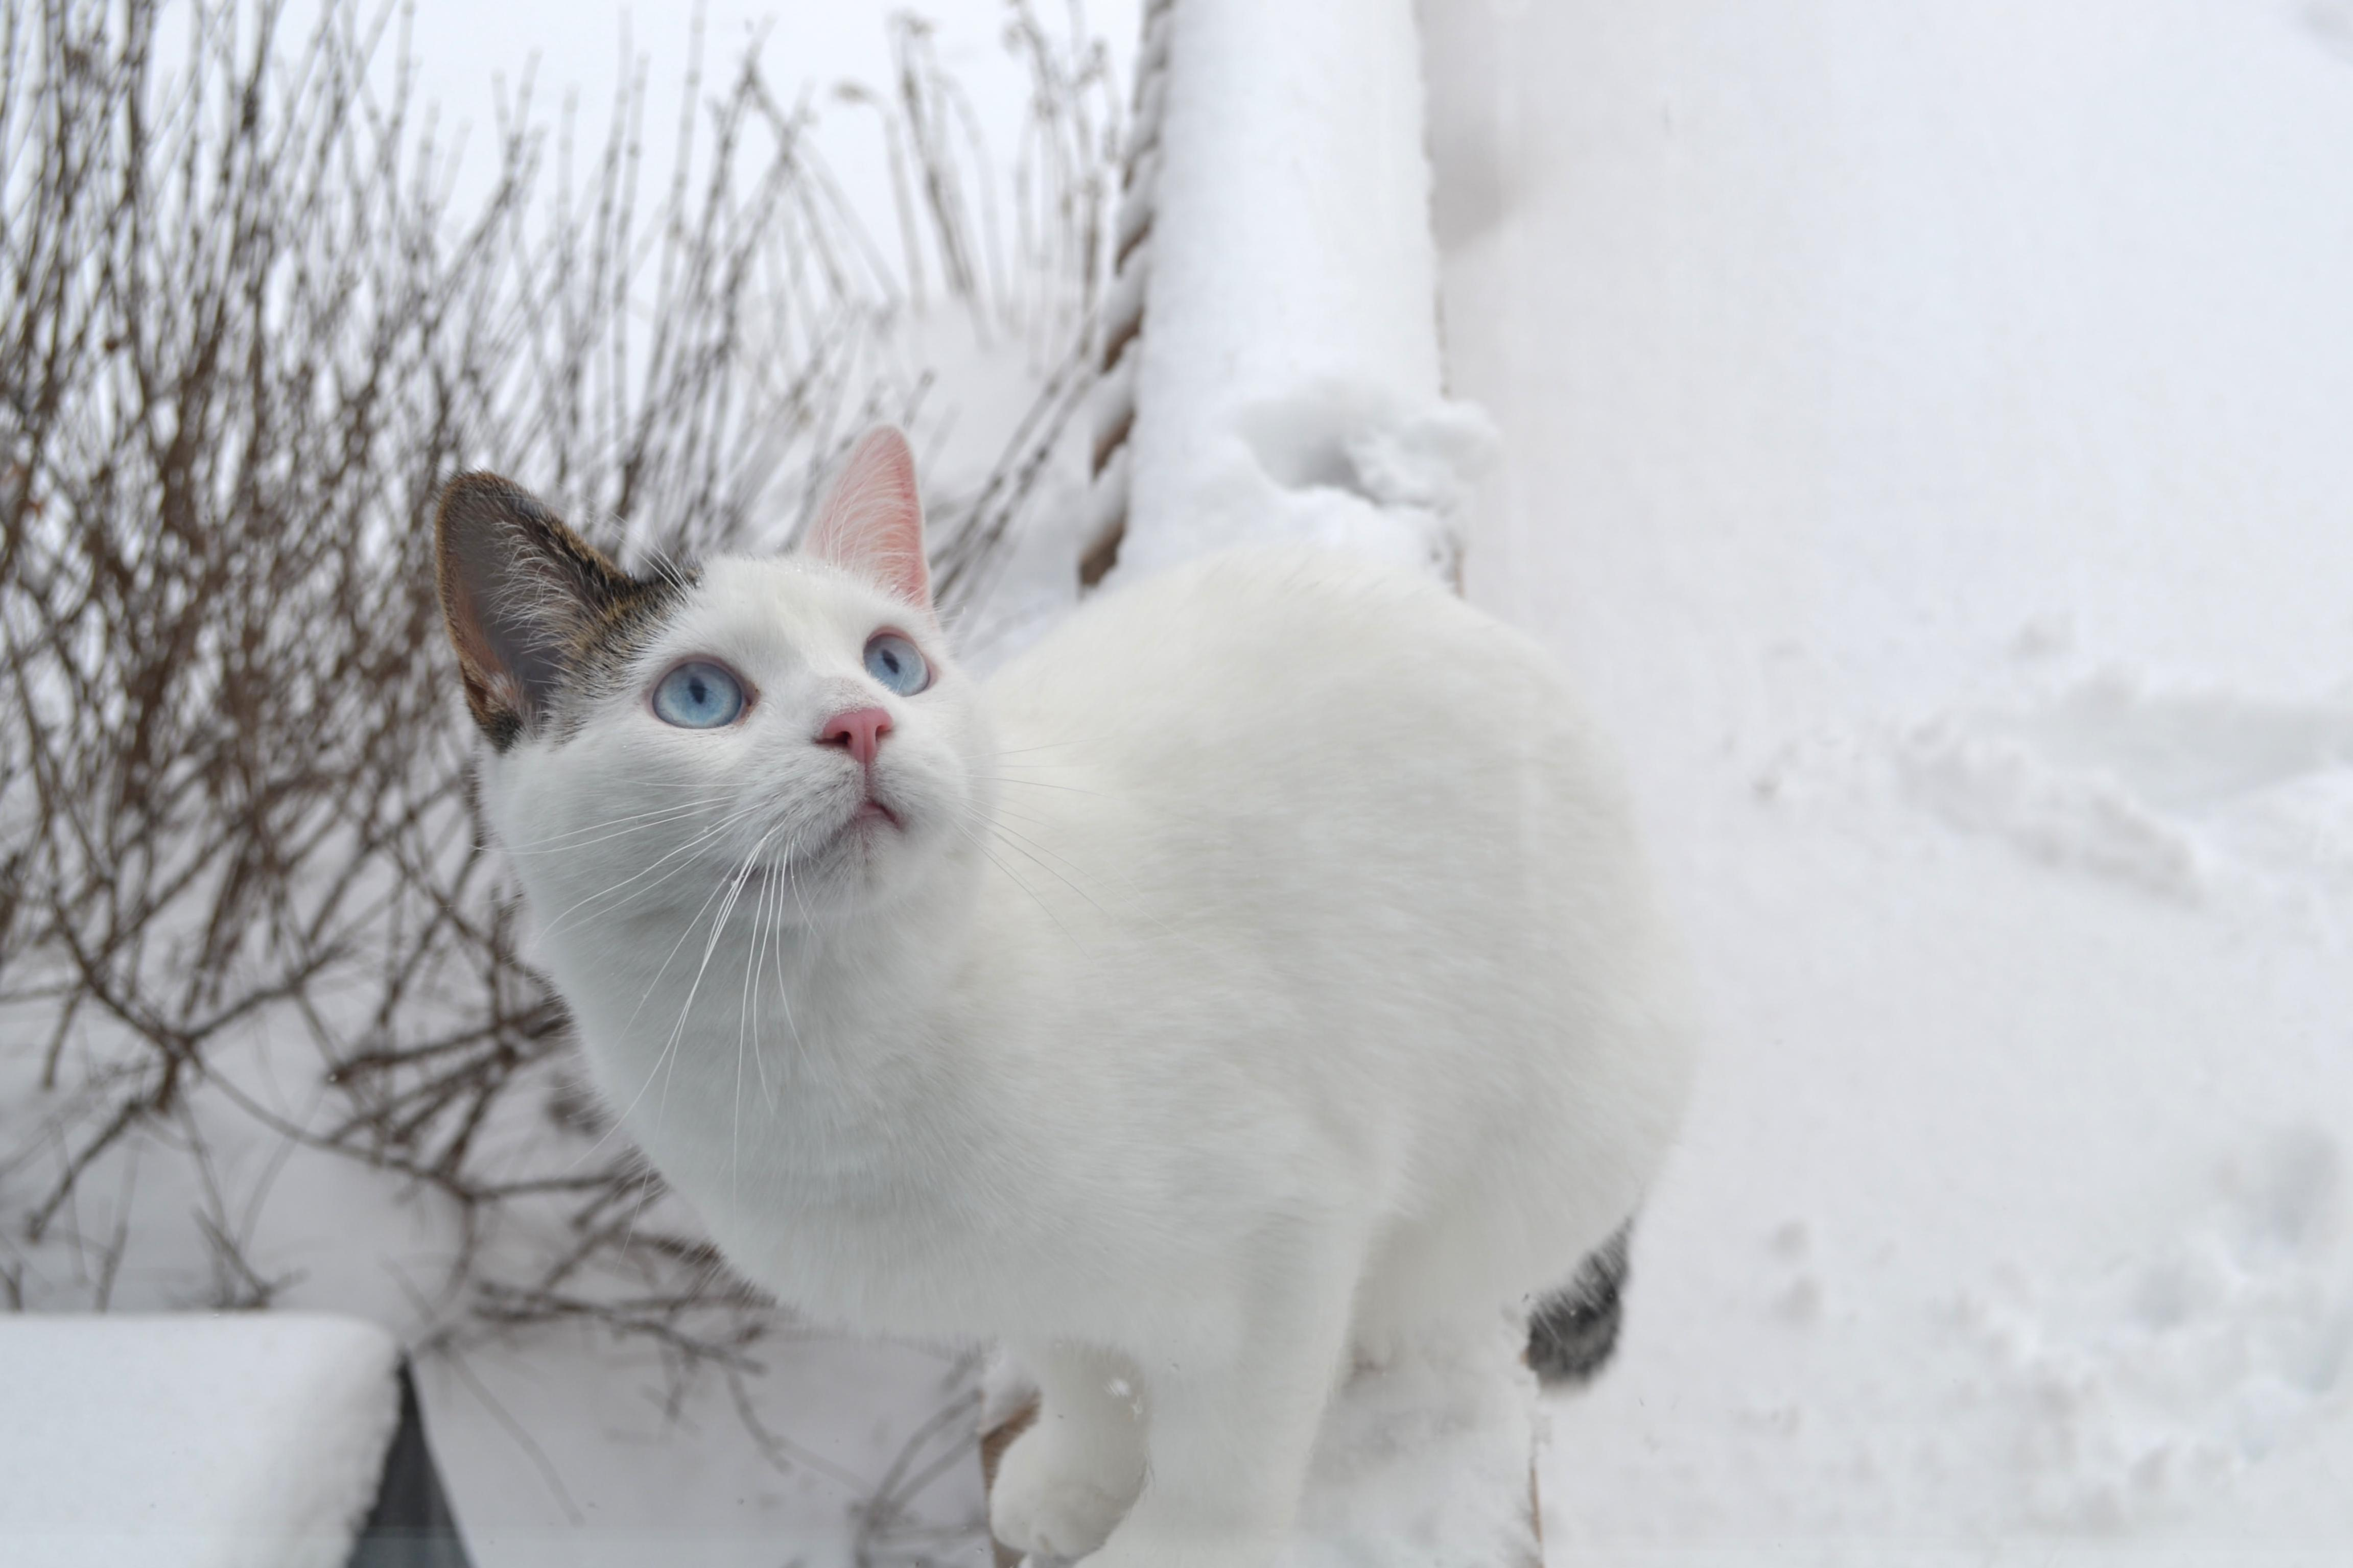 Meet snowball think she loves the snow